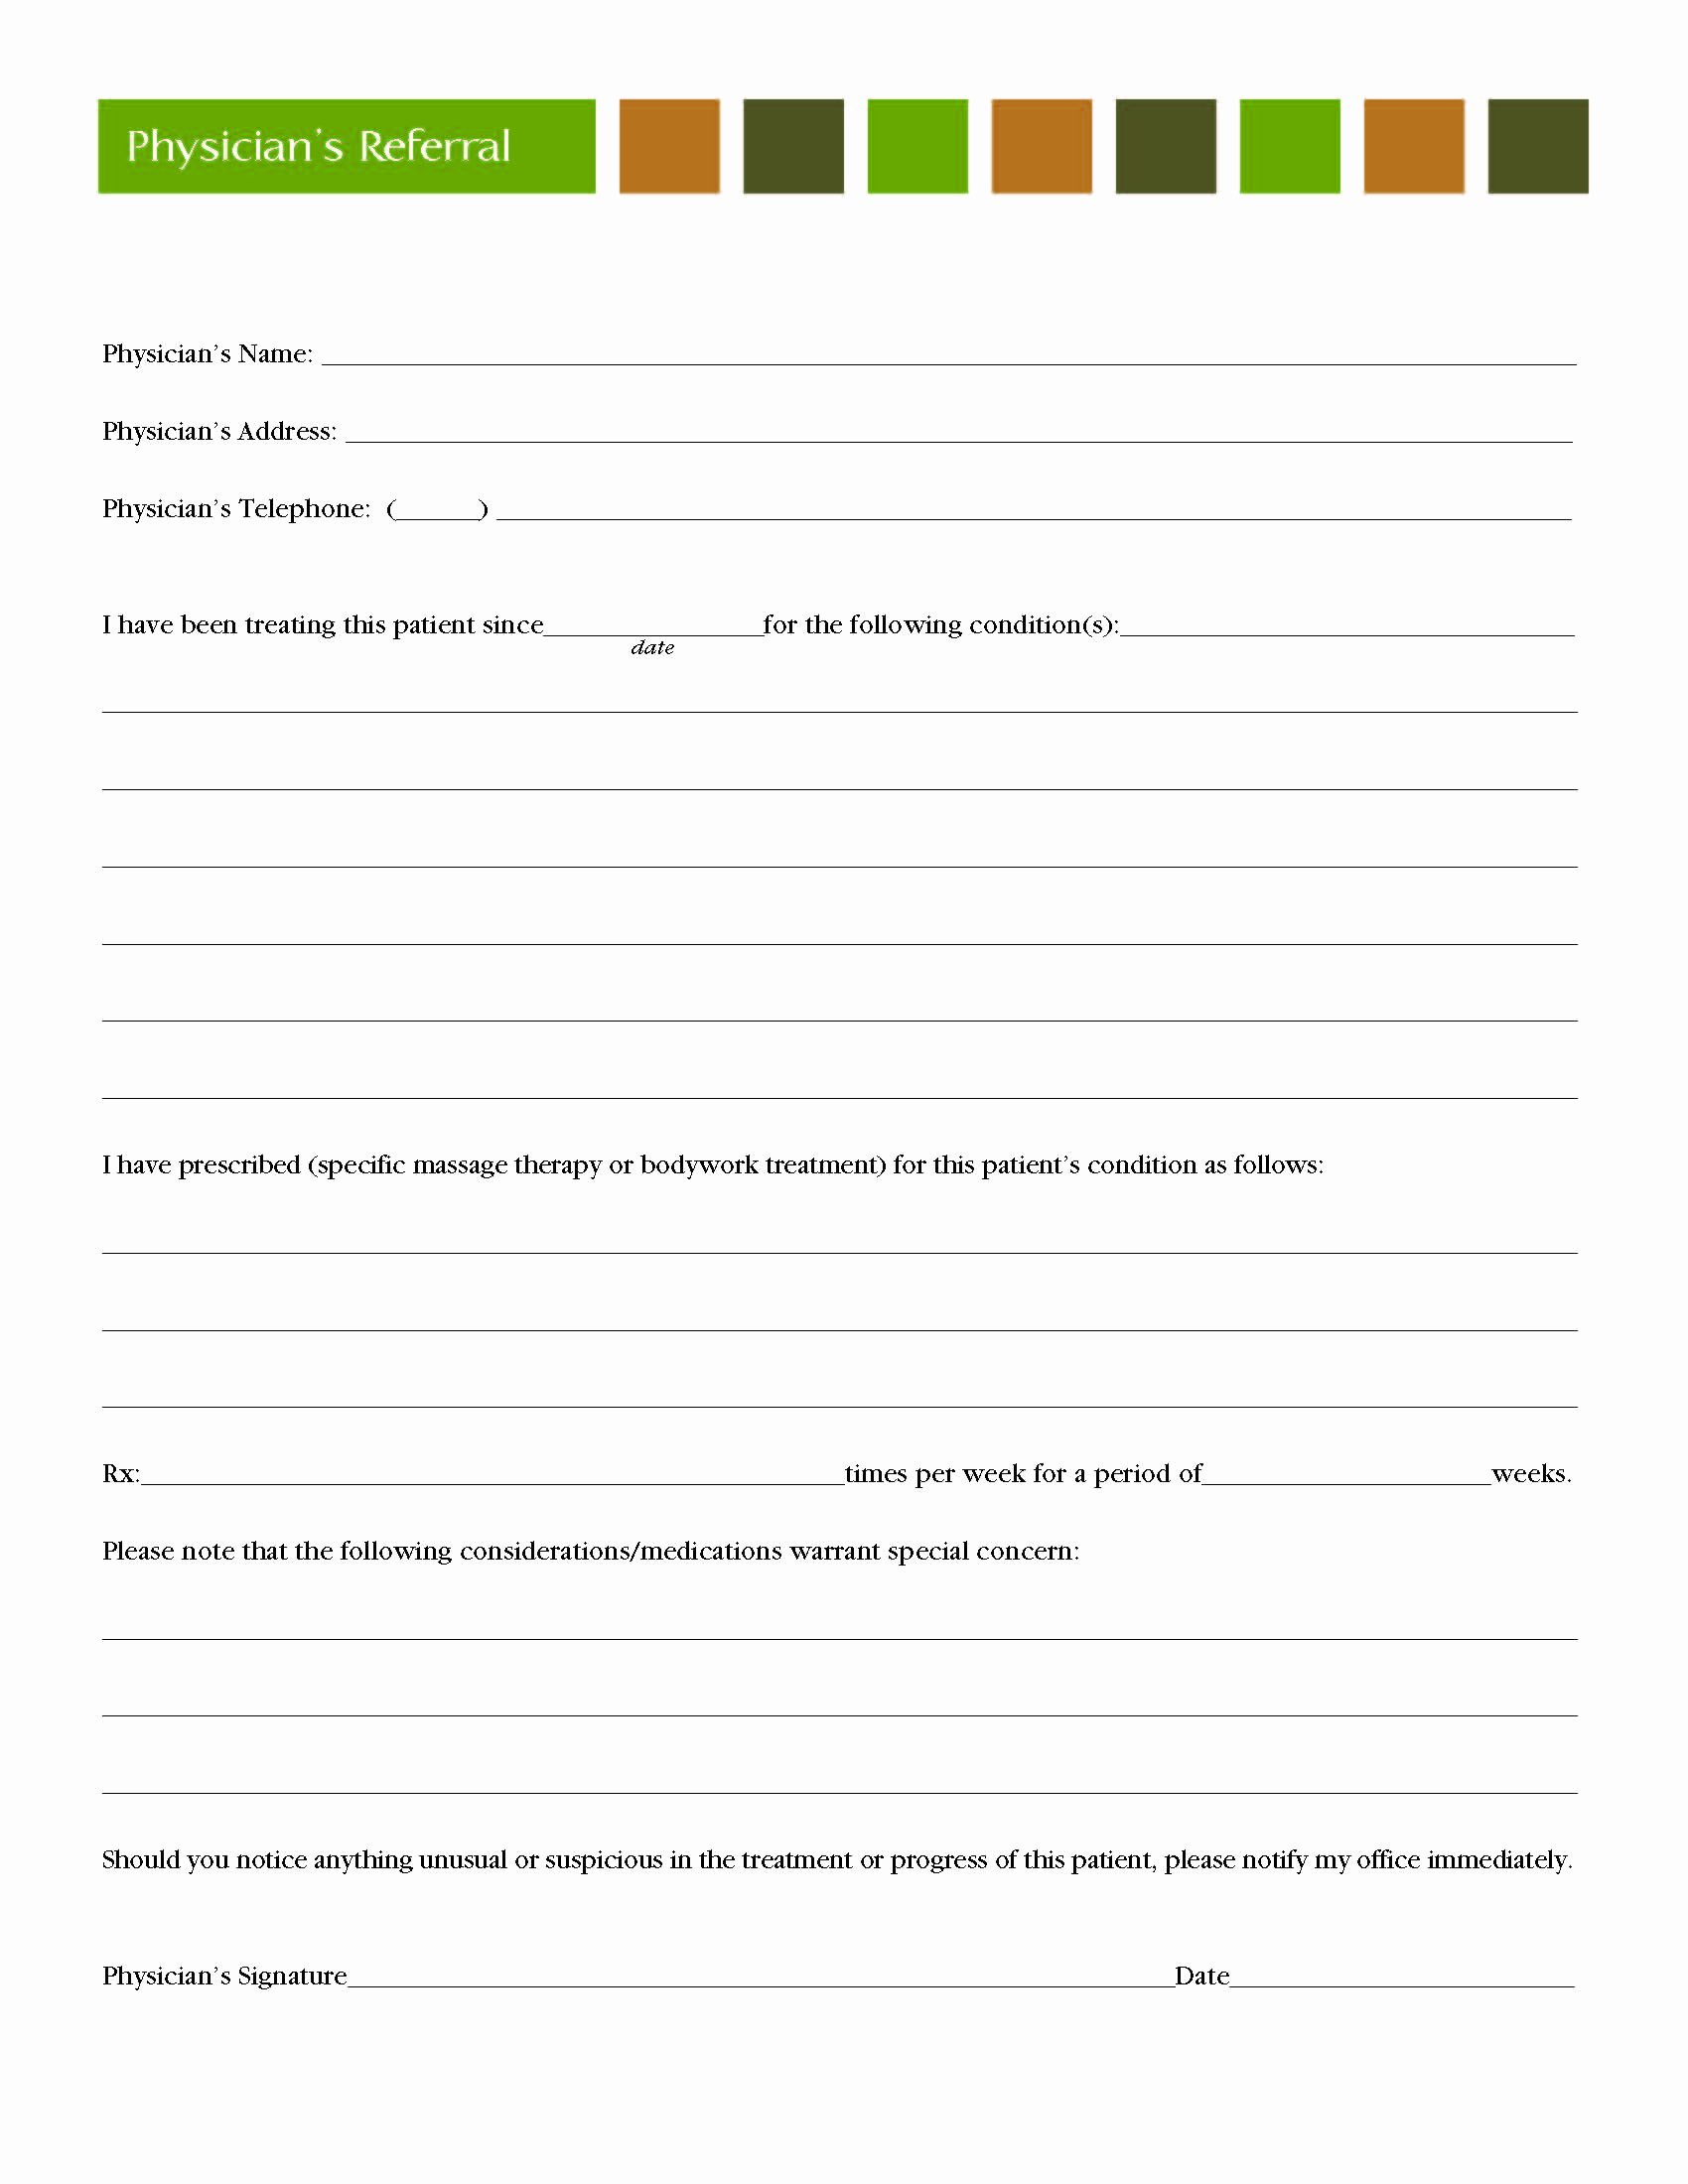 Customer Referral form Beautiful Client forms Ridgefield Chiropractic and Massage